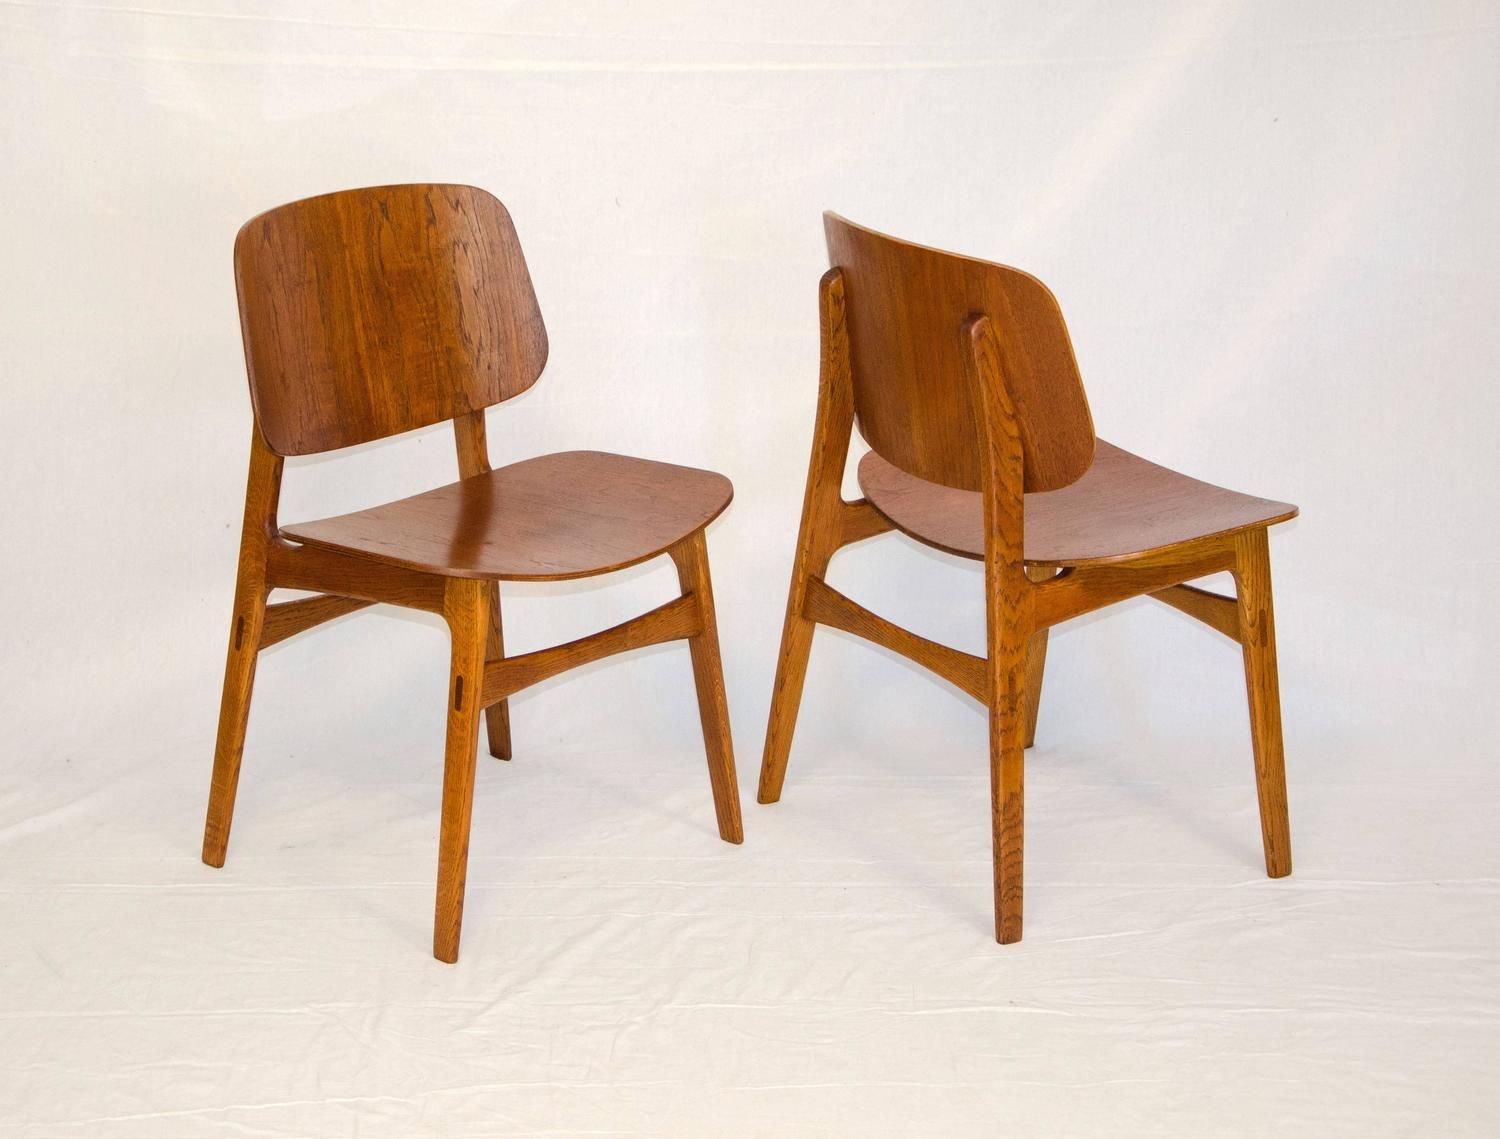 Commercial Dining Room Chairs Enchanting Set Of Six Bent Ply Teak And Oak Chairsbørge Mogensen  Teak Design Inspiration